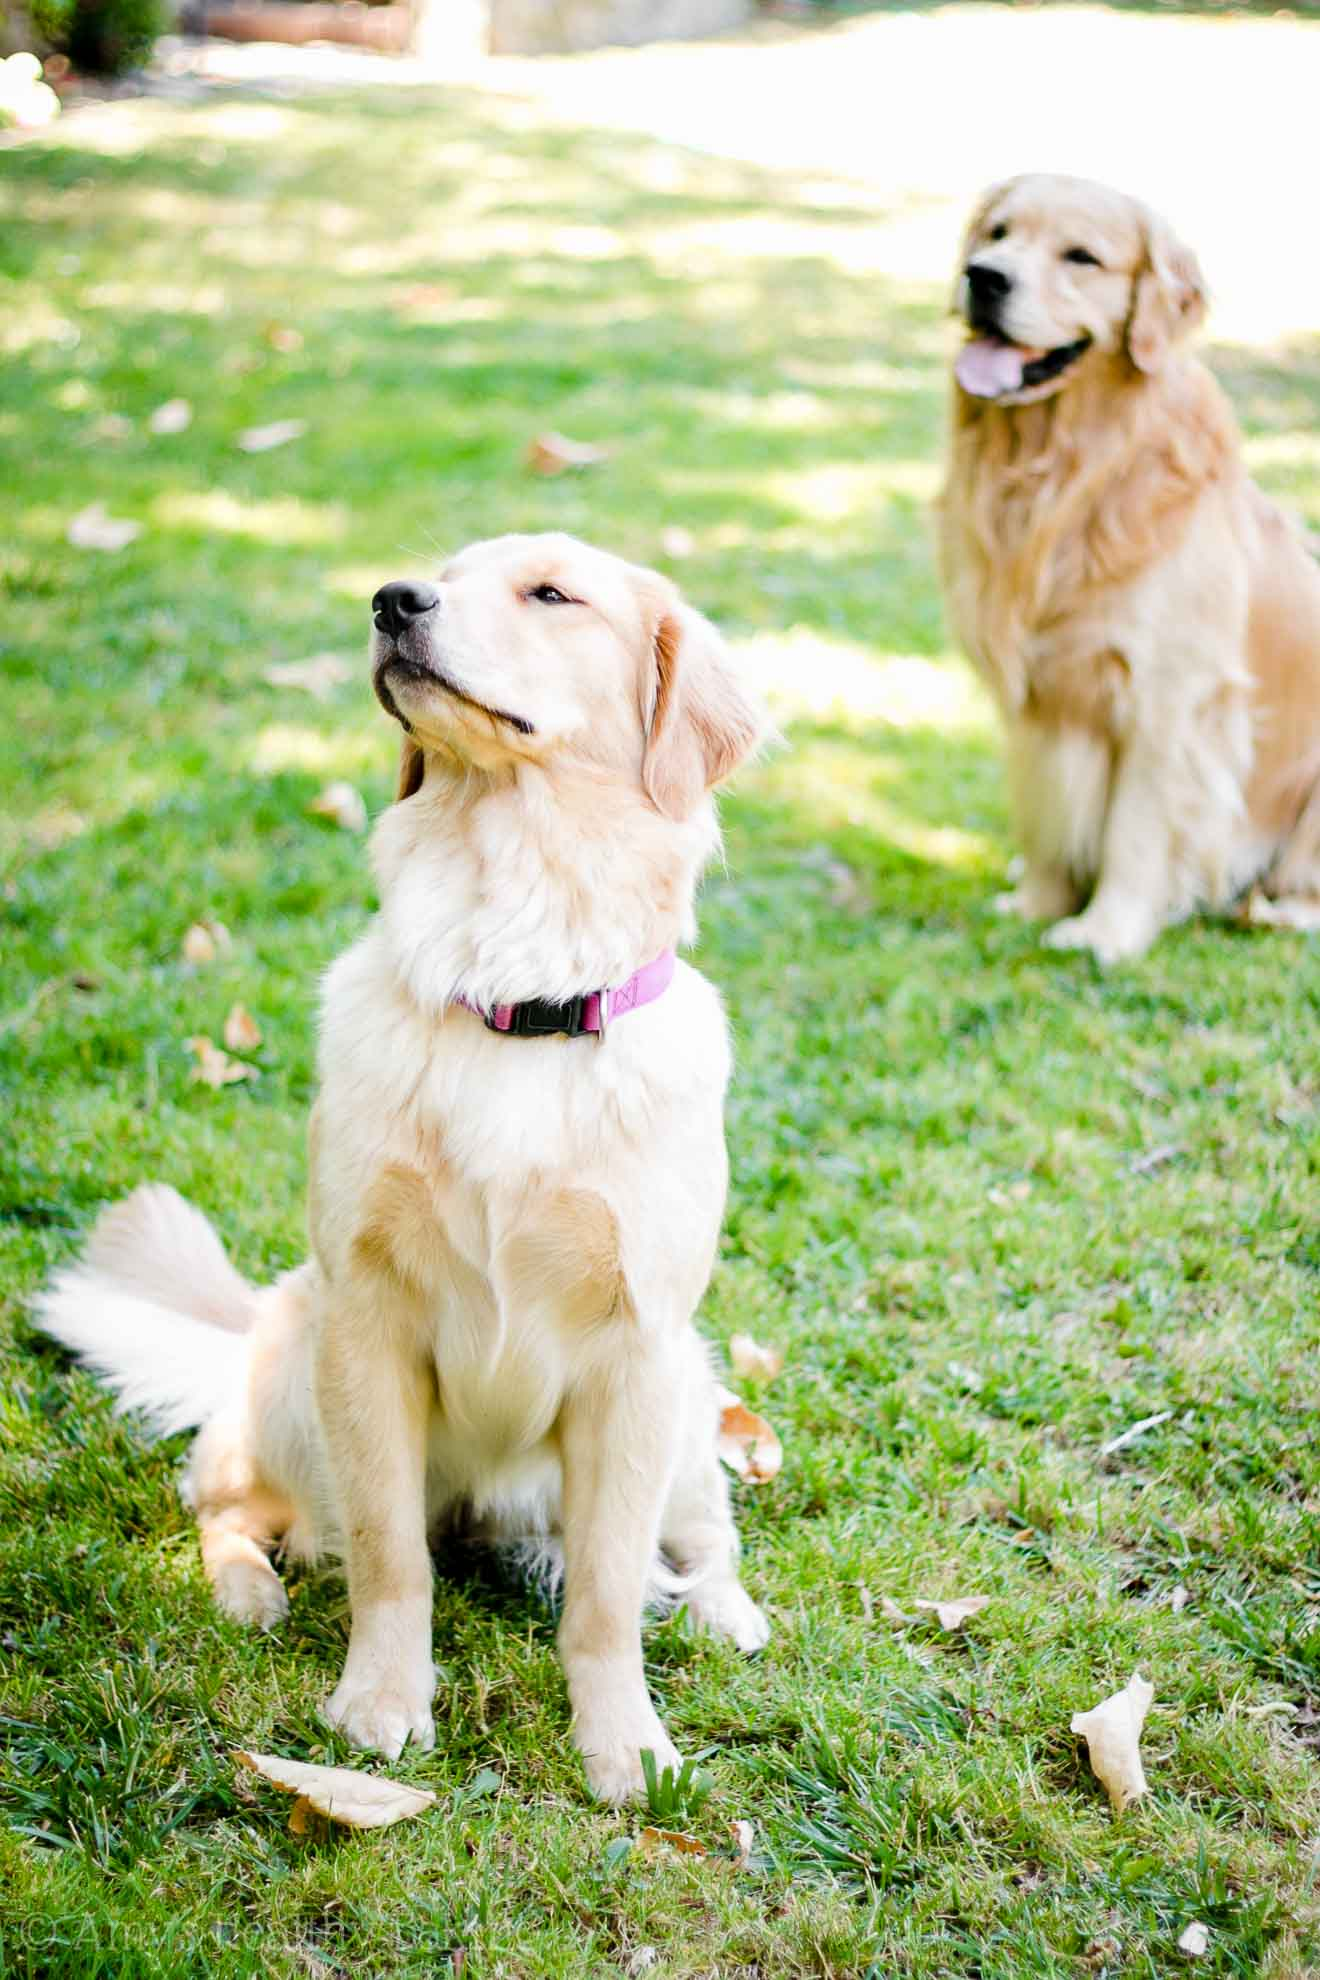 A relaxing weekend in Northern California with our two golden retriever dogs